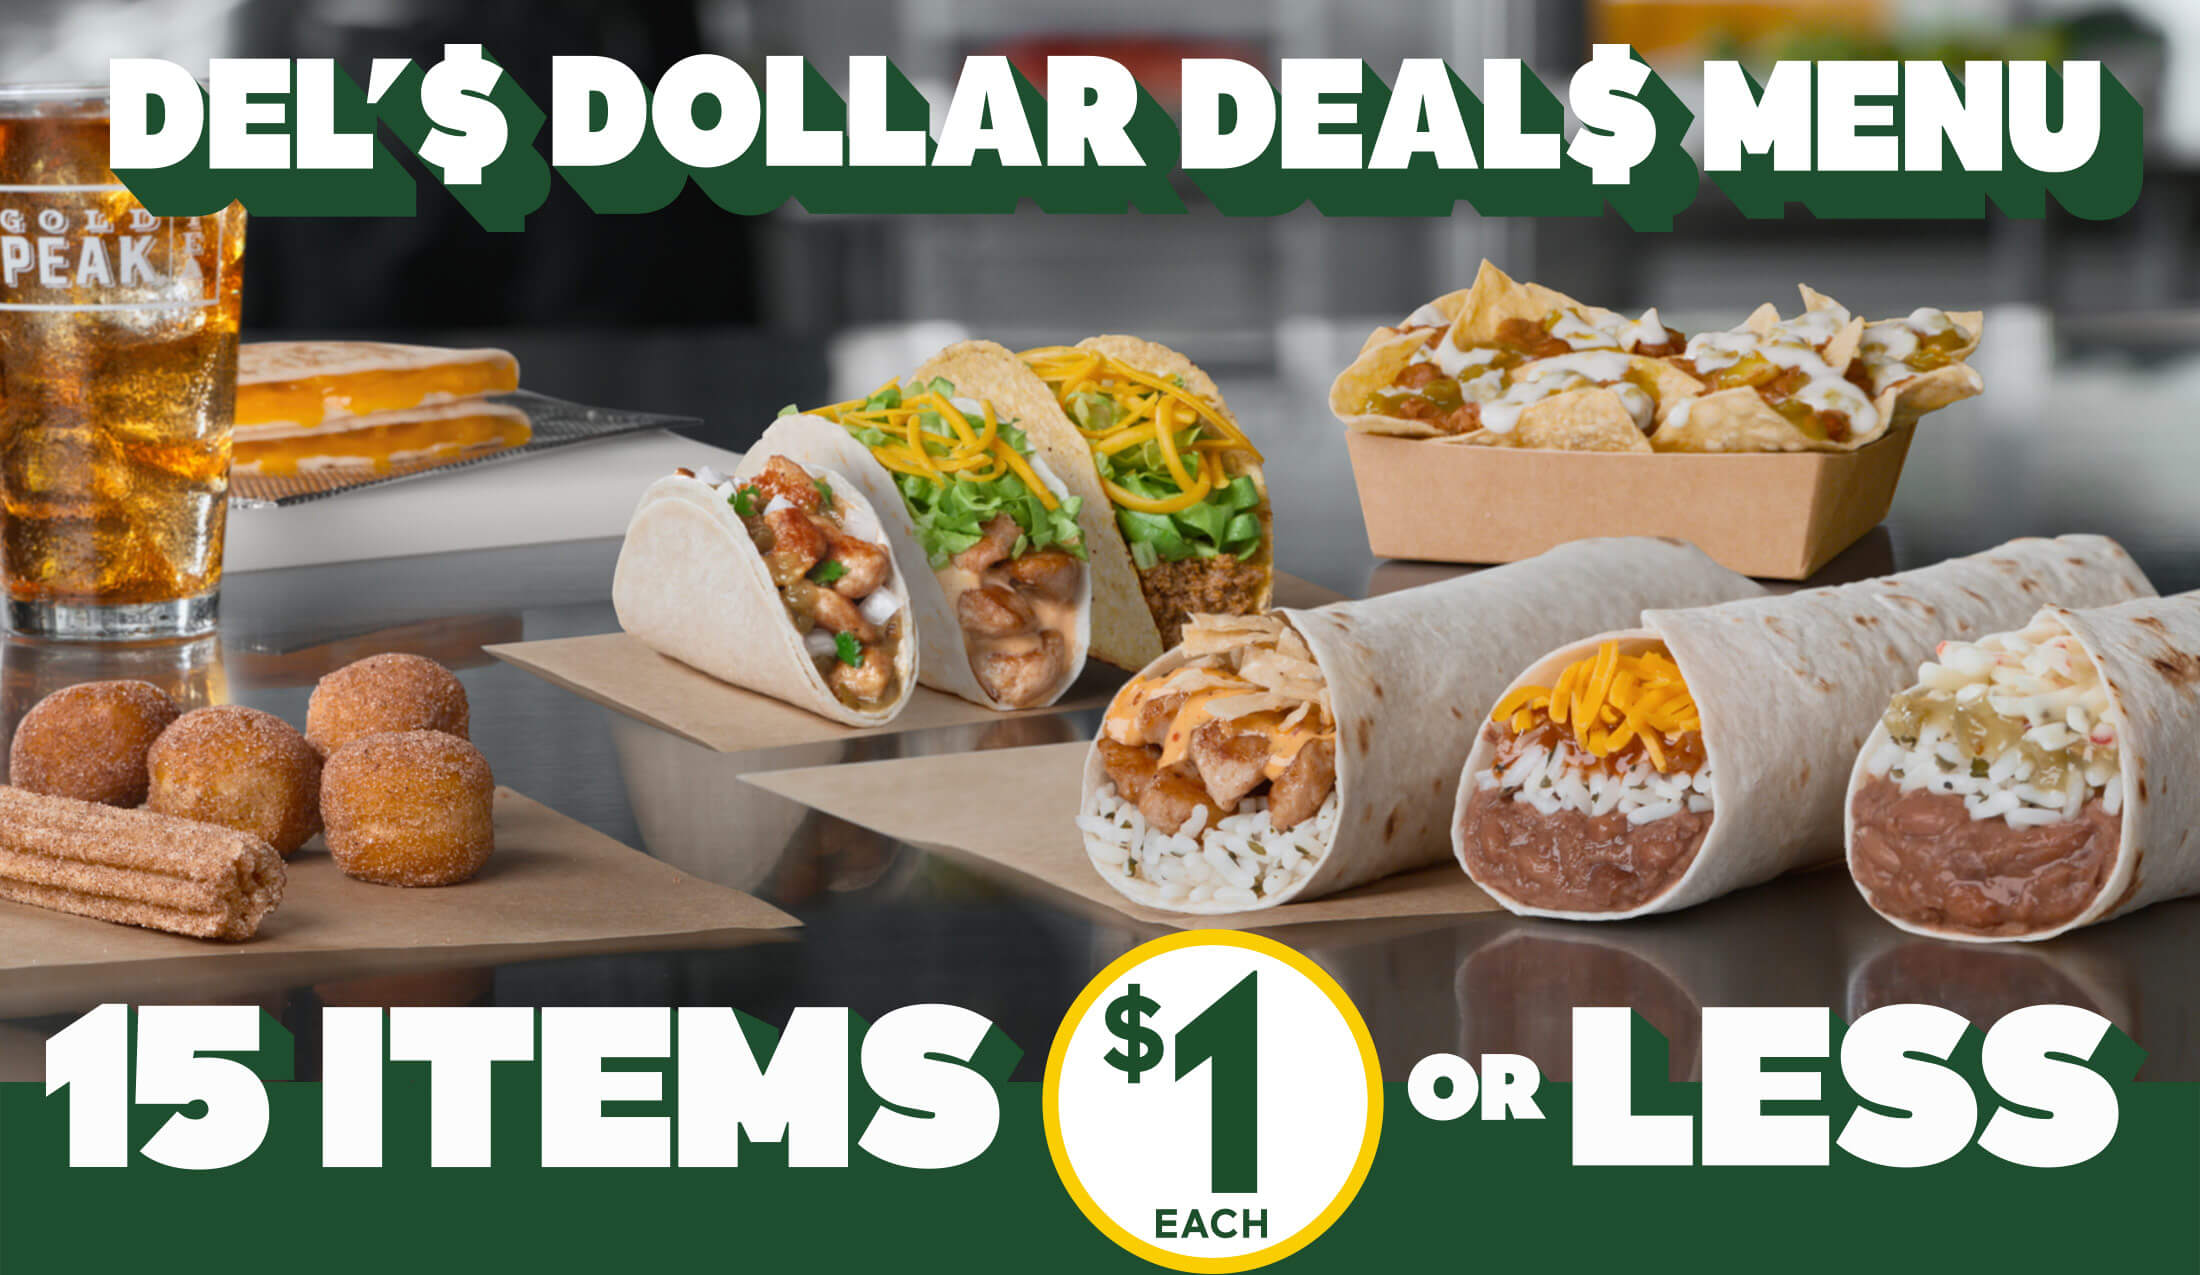 Del's Dollar Deals Menu. Starting at 69 cents, 79 cents, and one dollar.